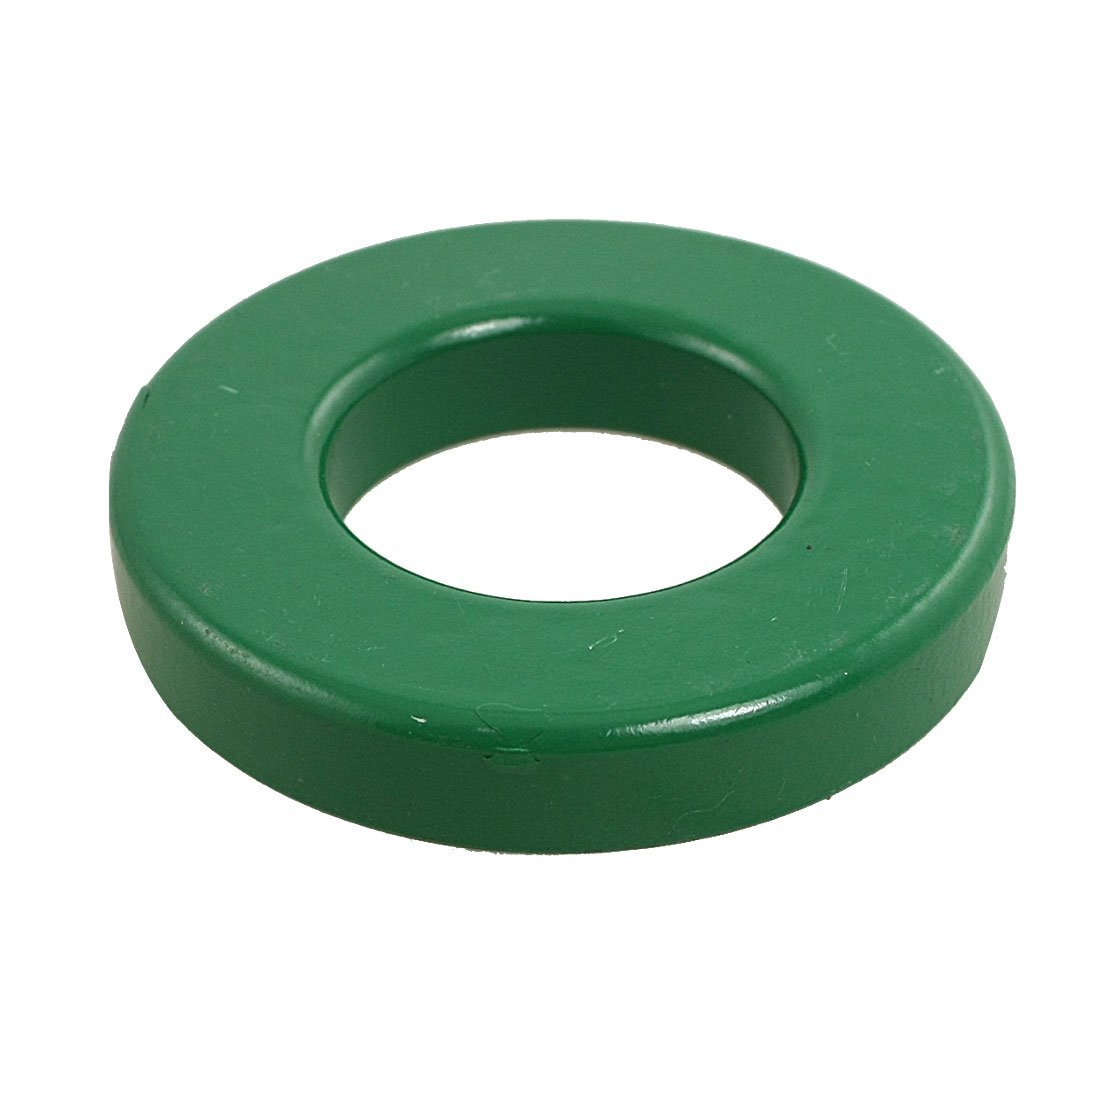 Promotion! Transformers Ferrite Toroid Cores Green 75mm x 39mm x 13mm new man silicone vagina real aircraft cup male masturbator small artificial pocket pussy penis pump toys adult fun sex products for men